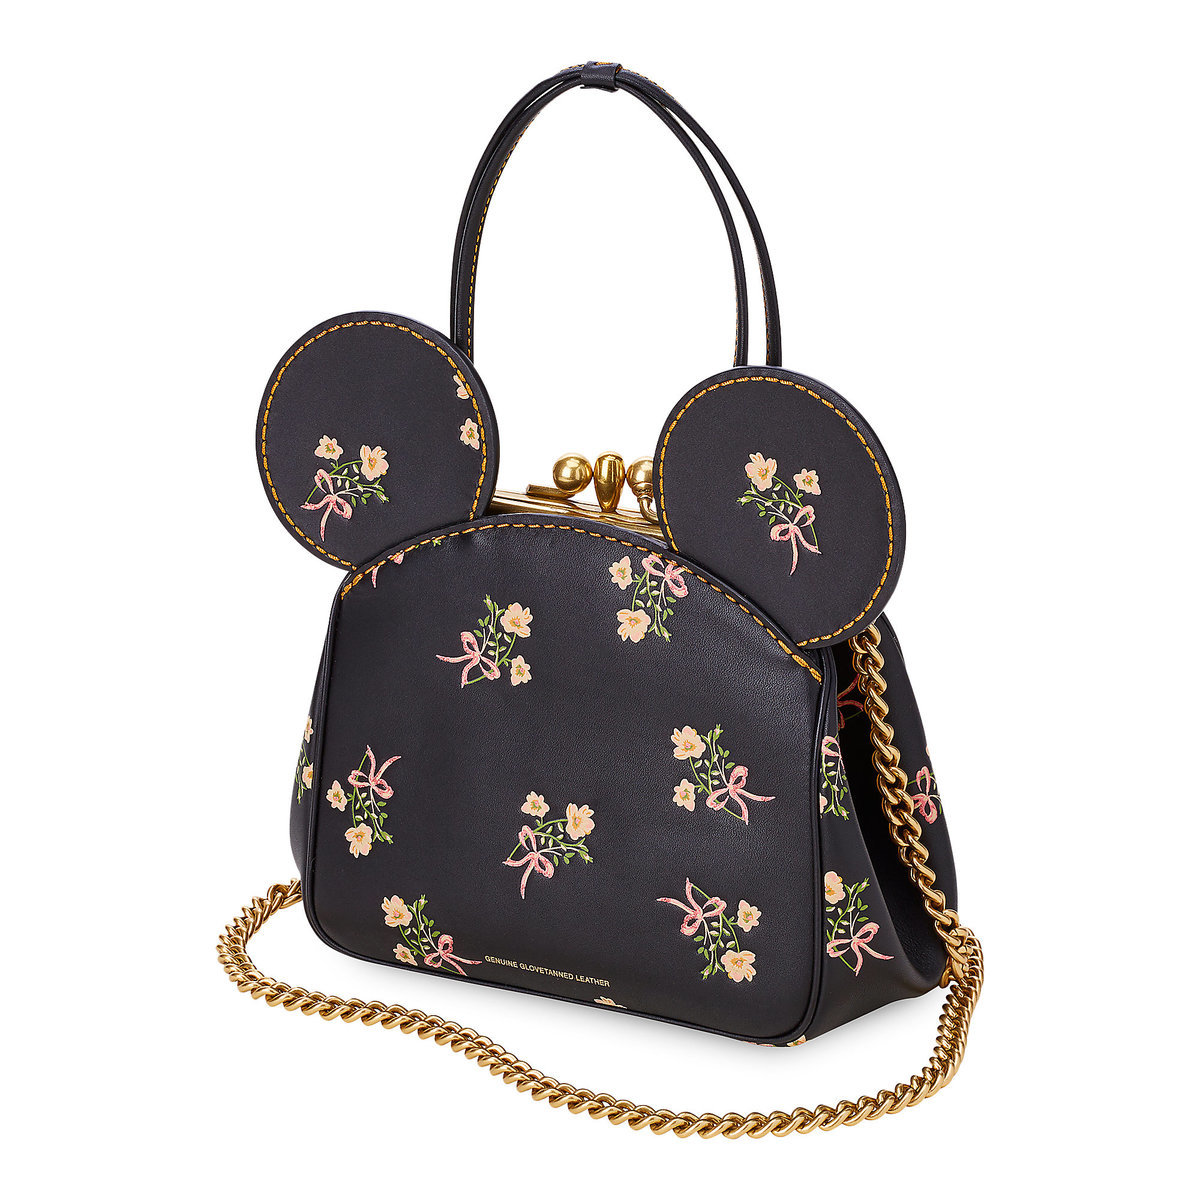 f5fc401e7 Product Image of Minnie Mouse Floral Kisslock Leather Bag by COACH - Black  # 1